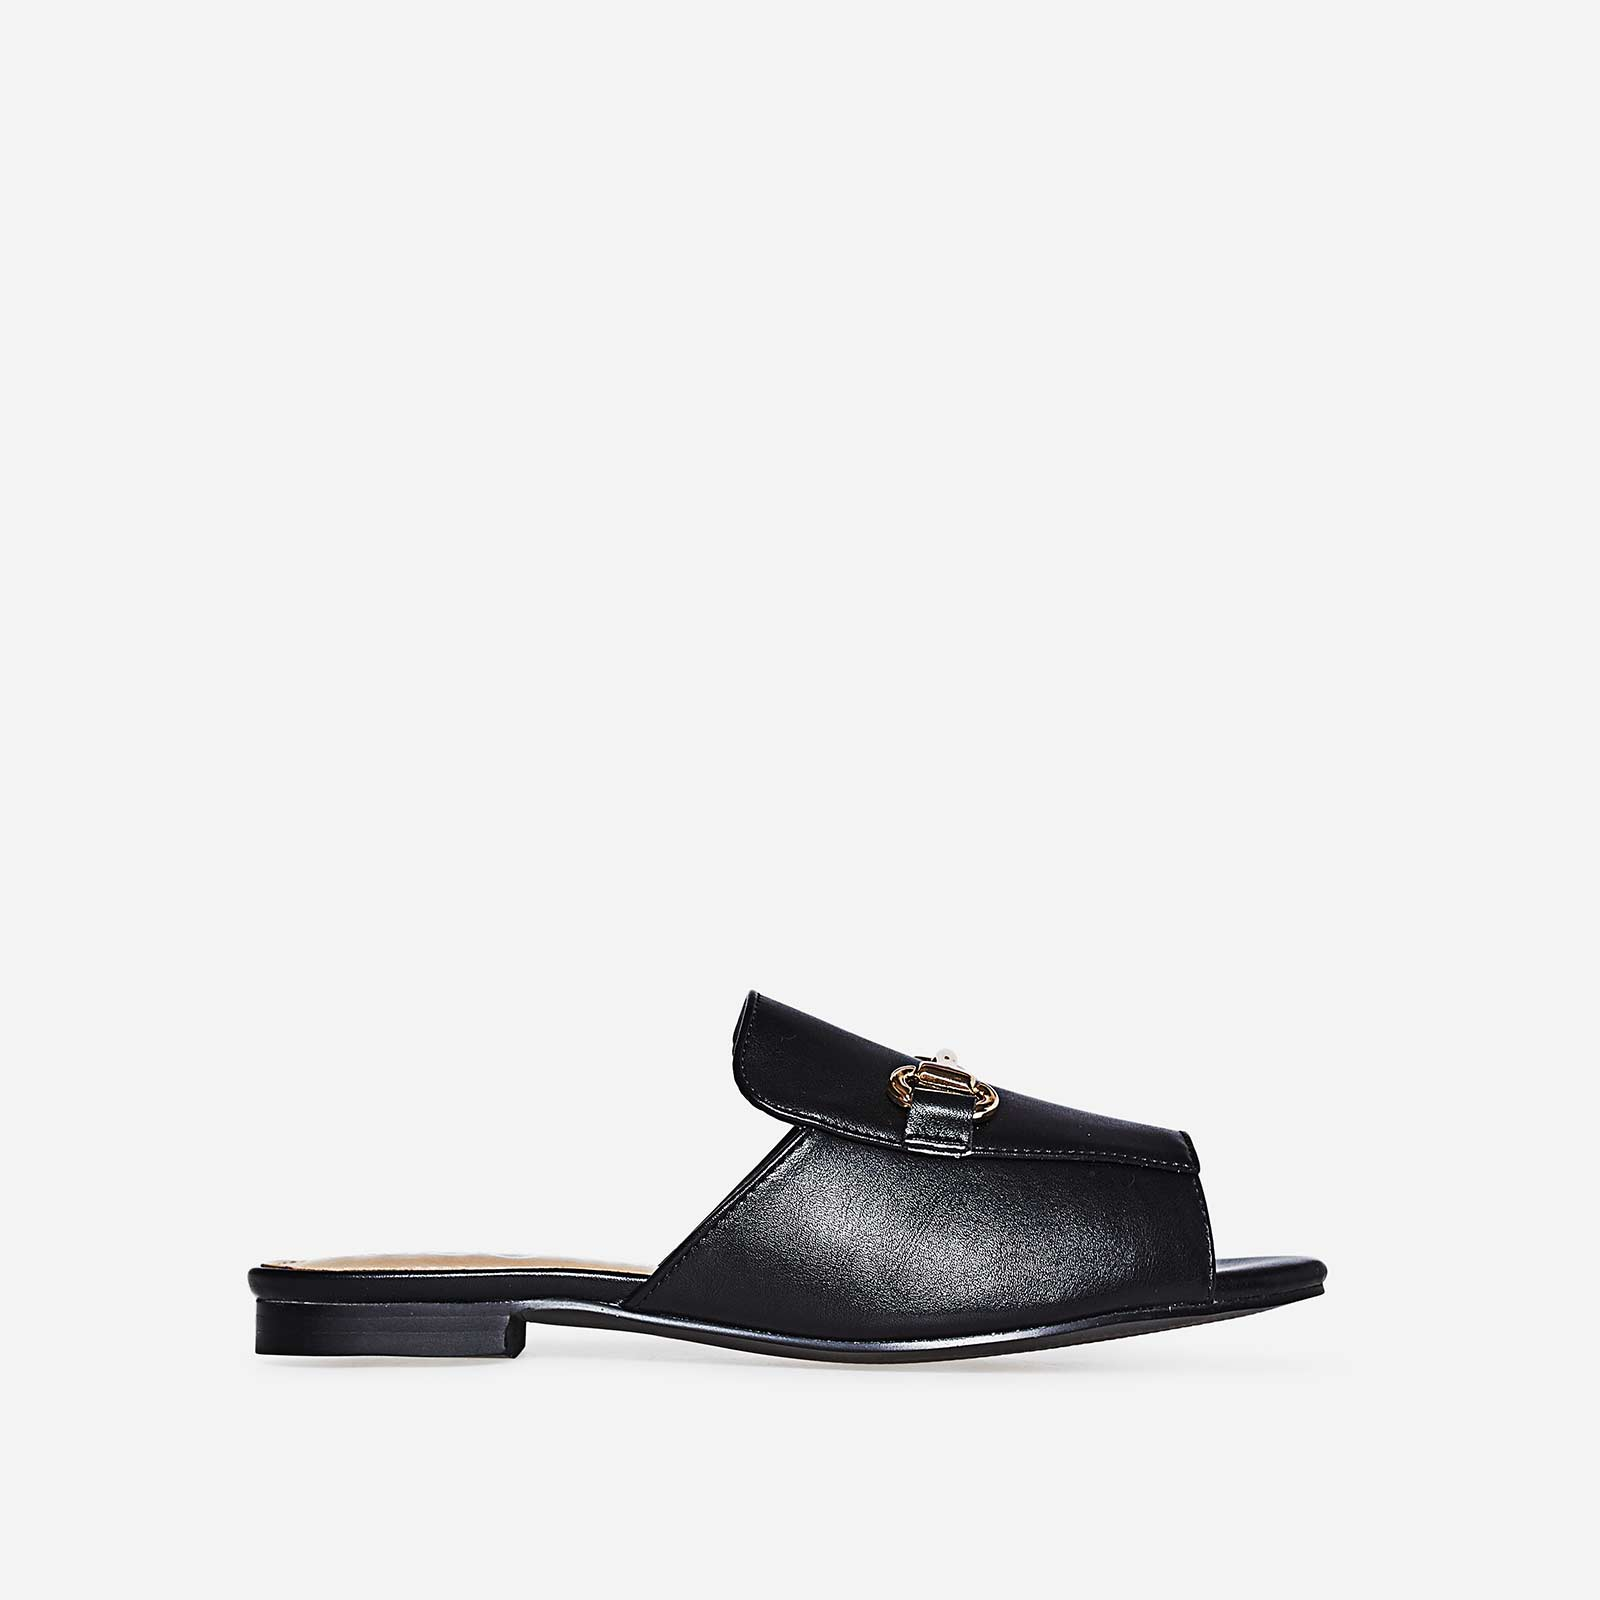 Matha Peep Toe Flat Mule In Black Faux Leather